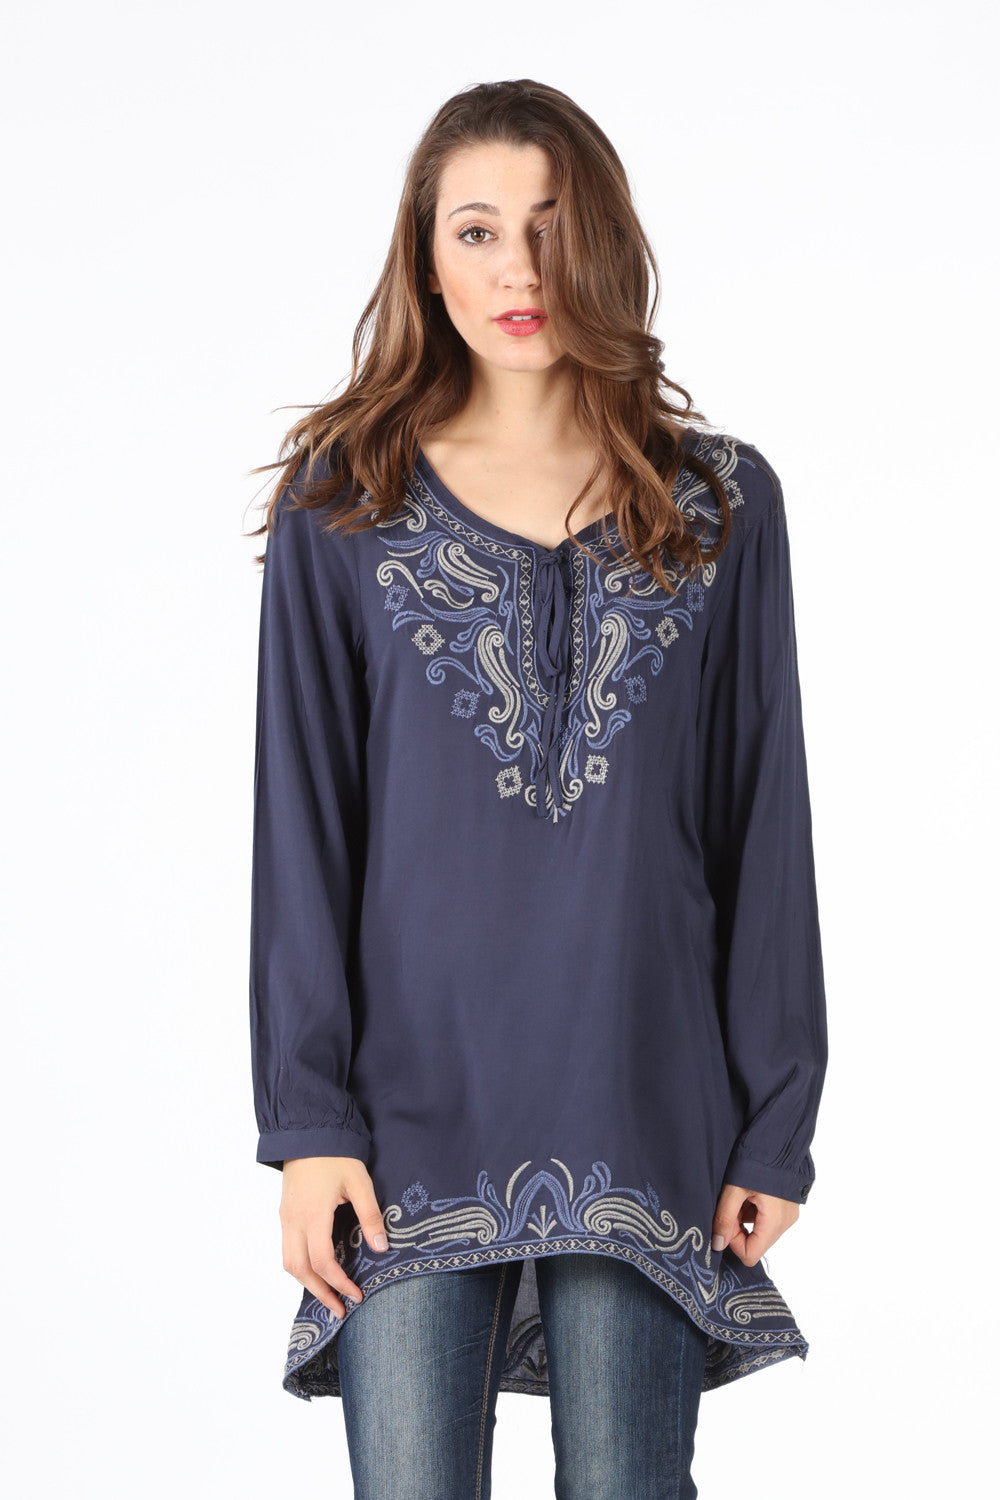 7983 Navy Soutache Tie-Yoke Sidetail Top